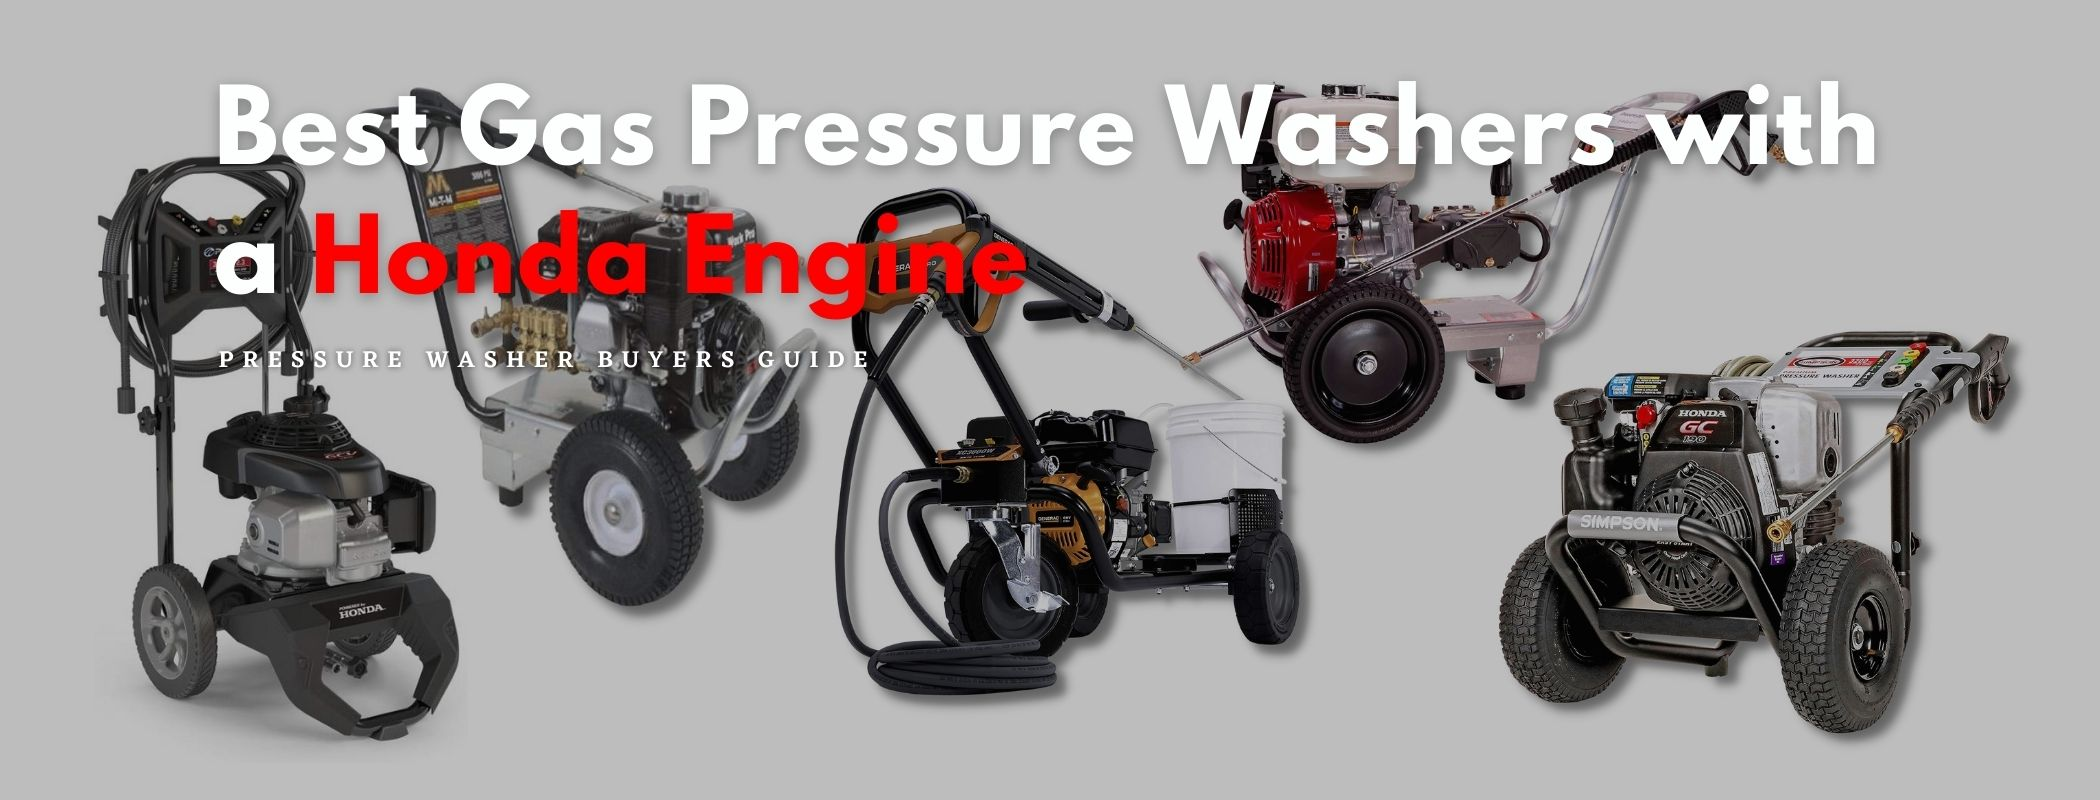 Best Gas Pressure Washers with a Honda Engine - Our 5 Favorites